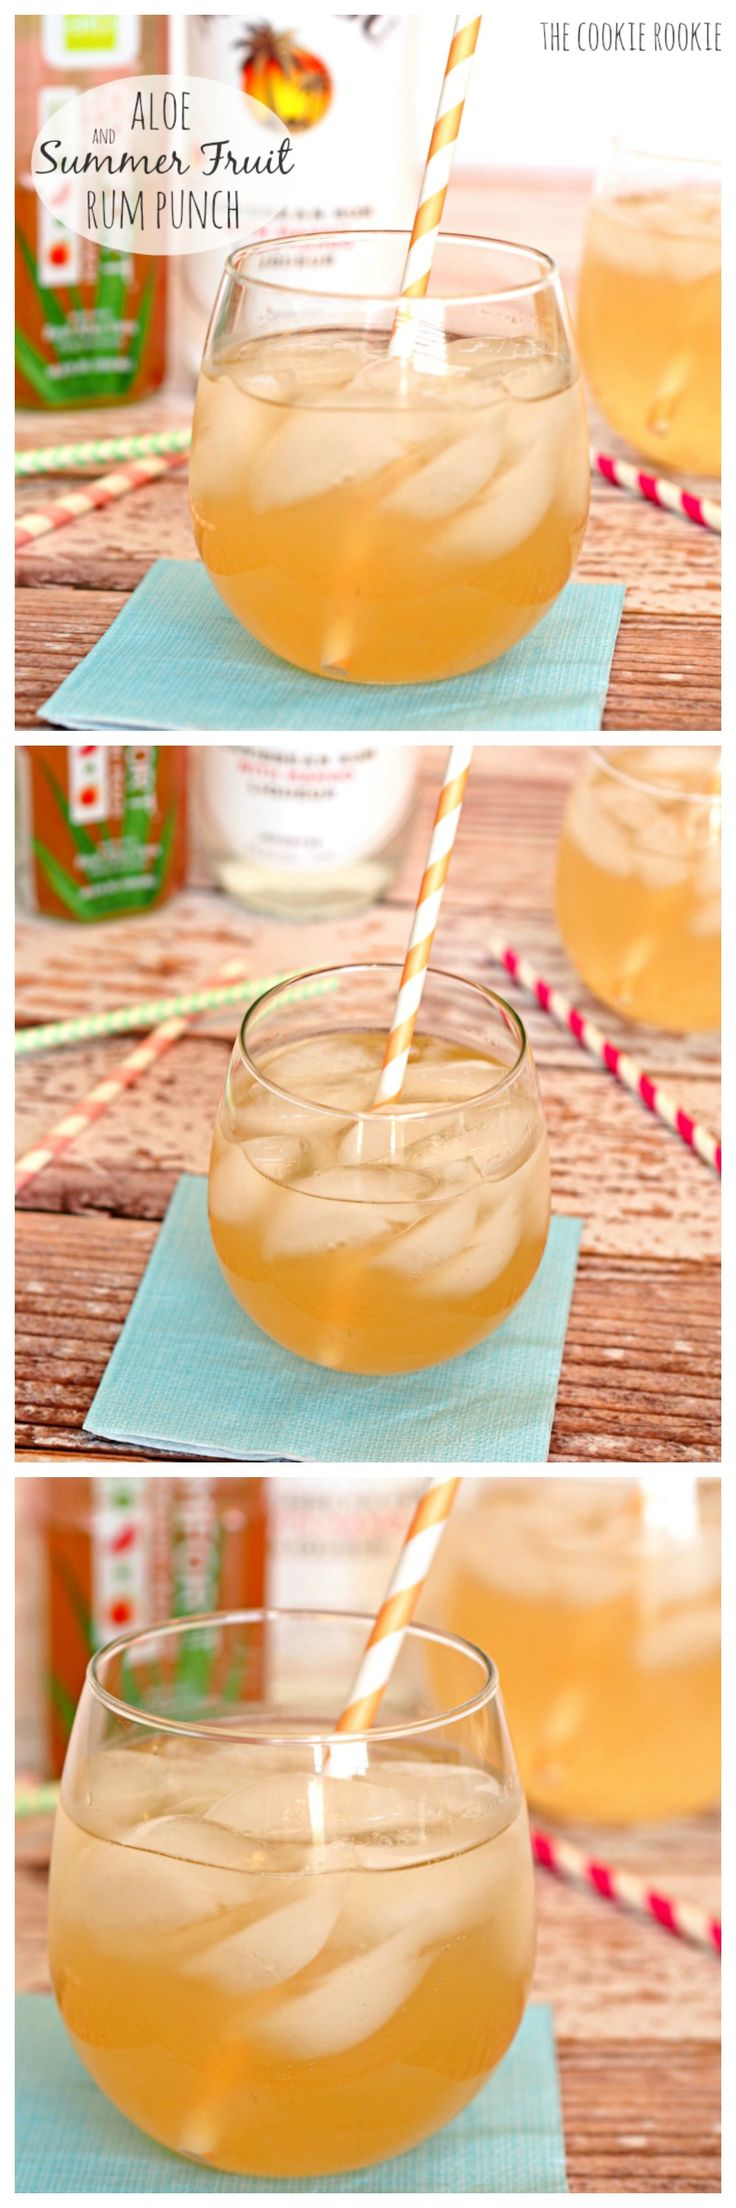 Aloe Infused Summer Fruit Rum Punch! Perfect for Summer #alodrink - The Cookie Rookie